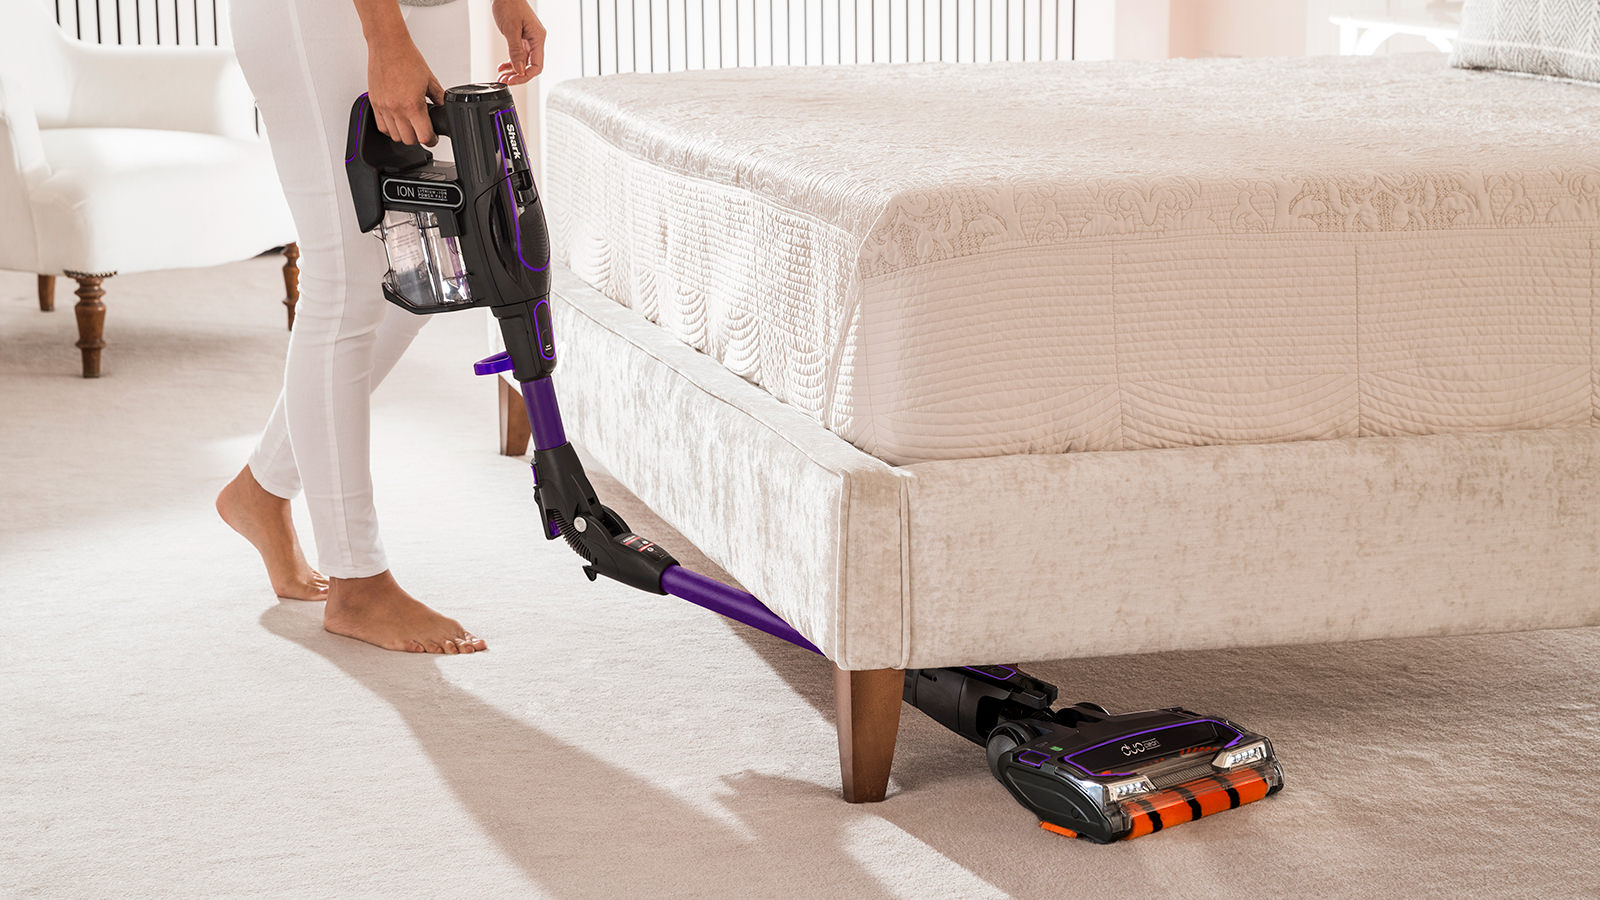 Under Furniture Cleaning with Flexology on Shark Cordless Vacuum Cleaner IF130UKTH